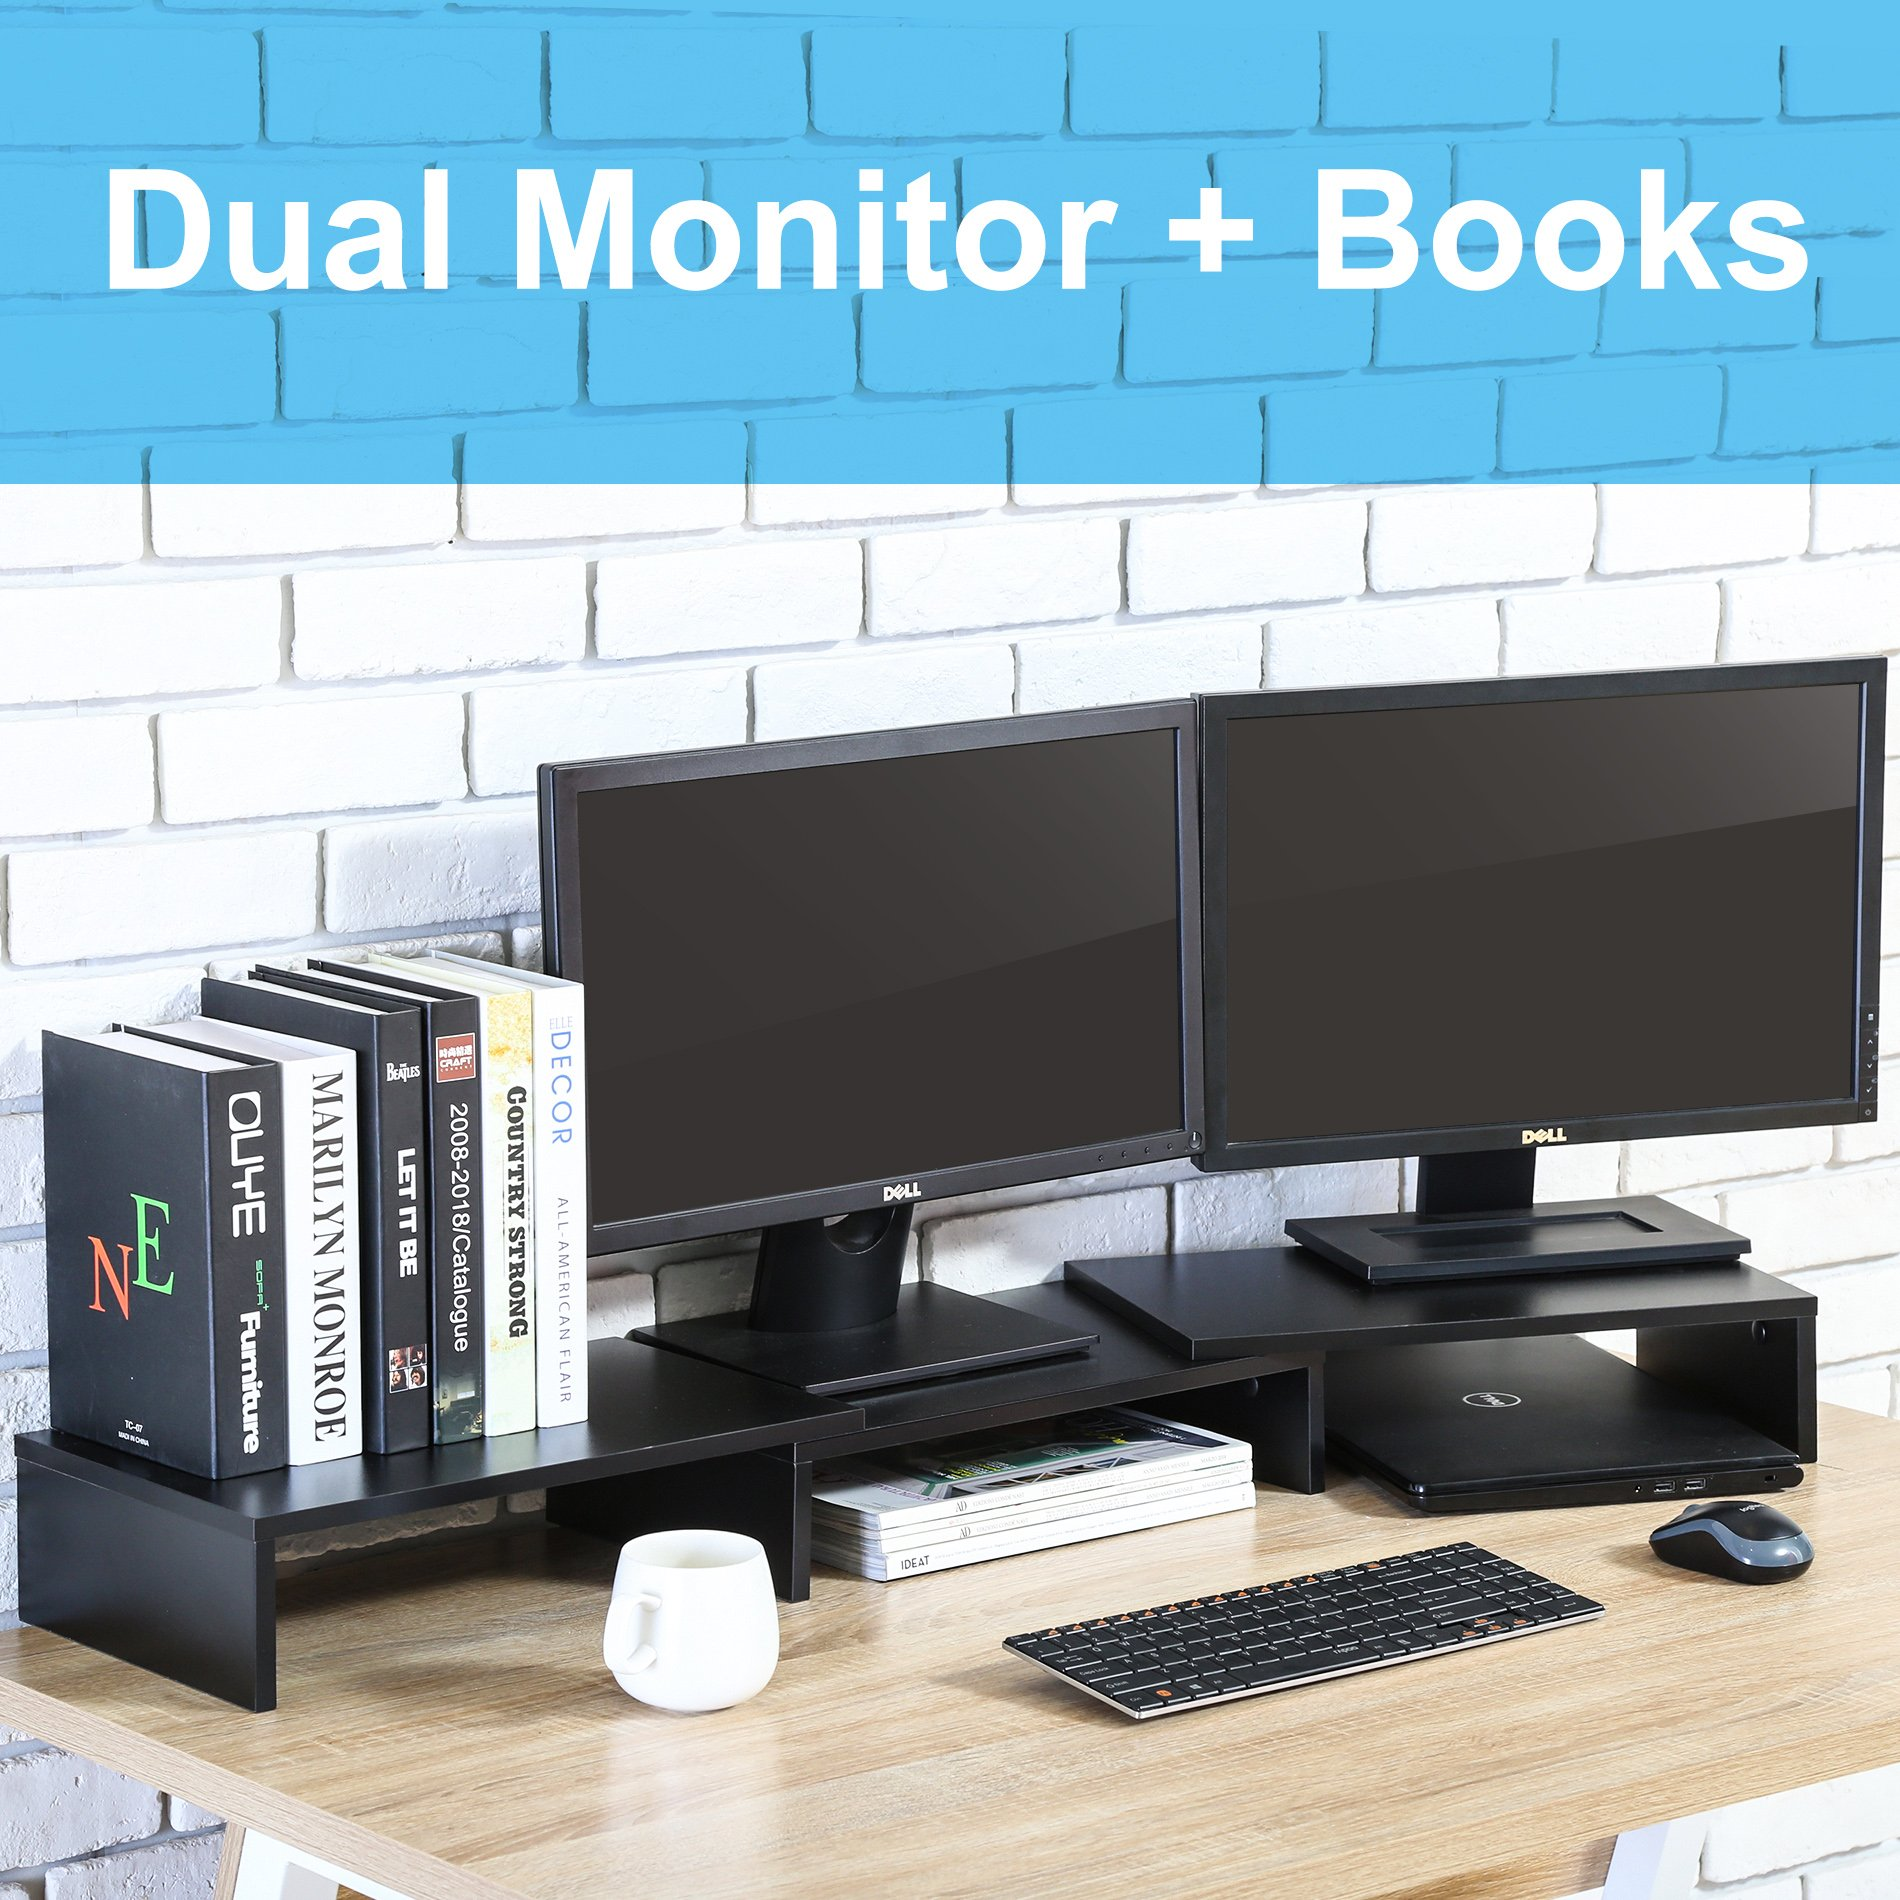 FITUEYES 3 Shelf Monitor Stand Riser with Adjustable Length and Angle,DT108001WB by FITUEYES (Image #5)